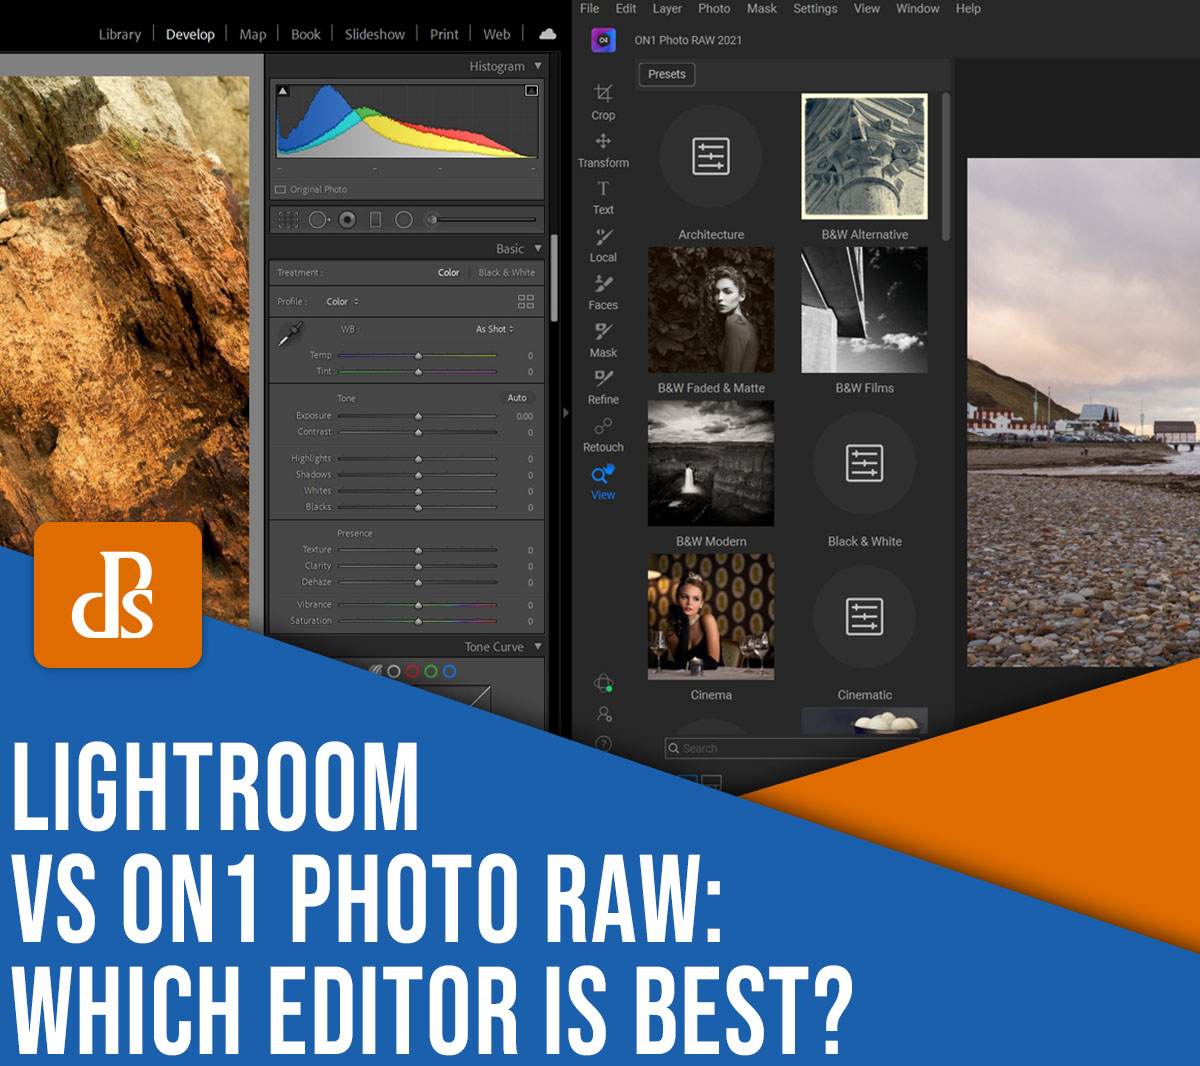 Lightroom vs ON1 Photo RAW: which editor is best?